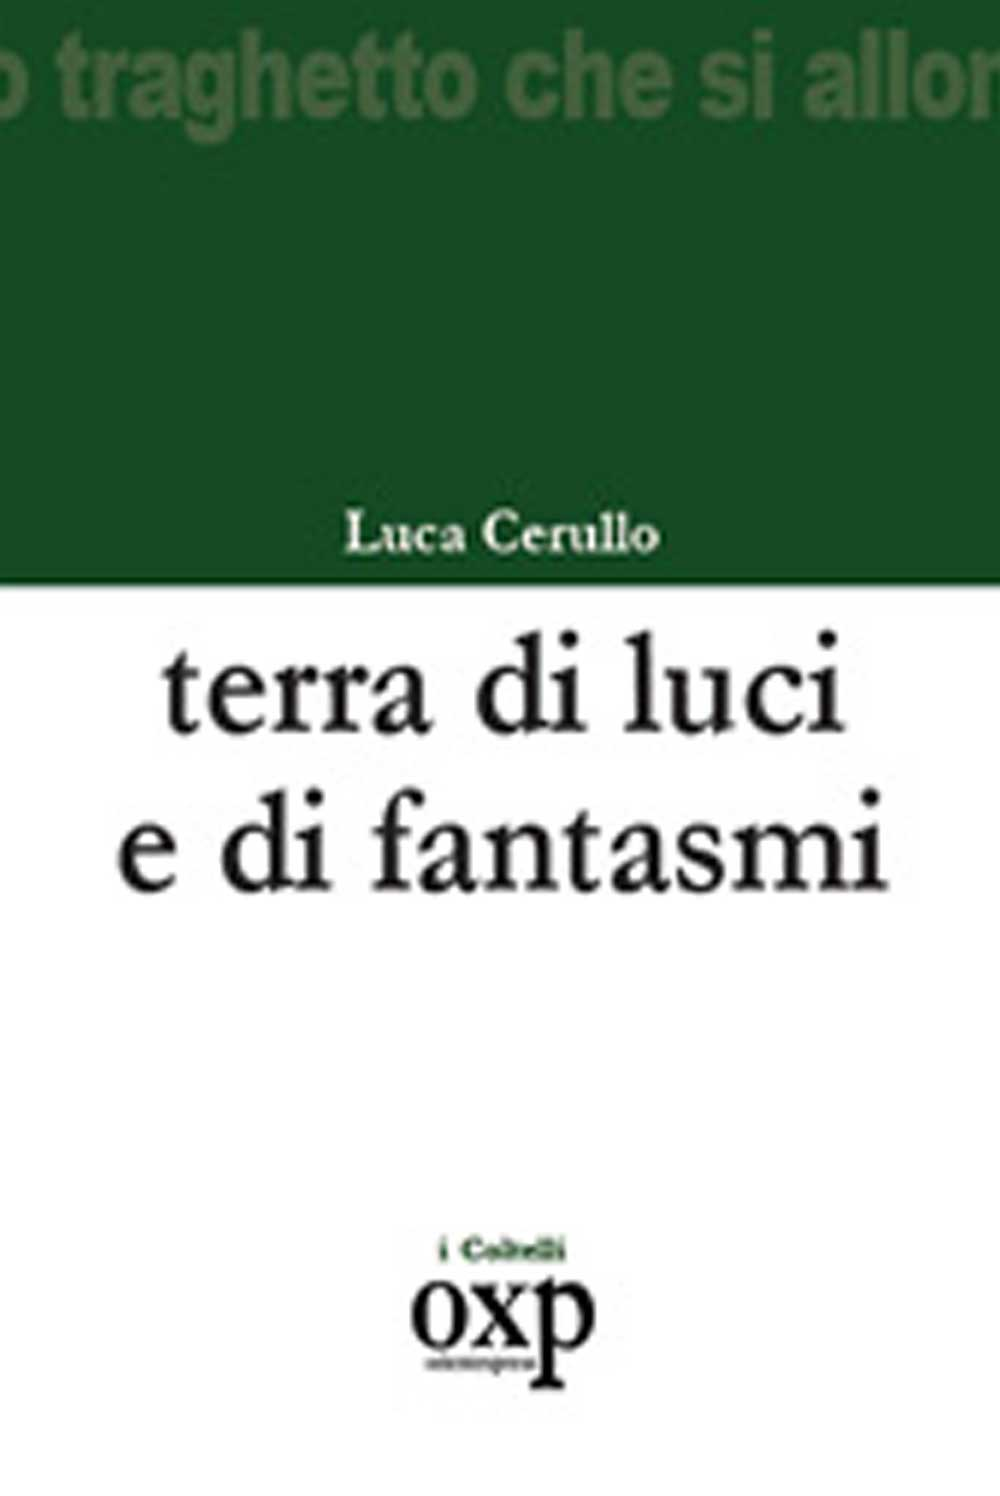 https://www.amazon.it/Terra-luce-fantasmi-Luca-Cerullo/dp/889500714X